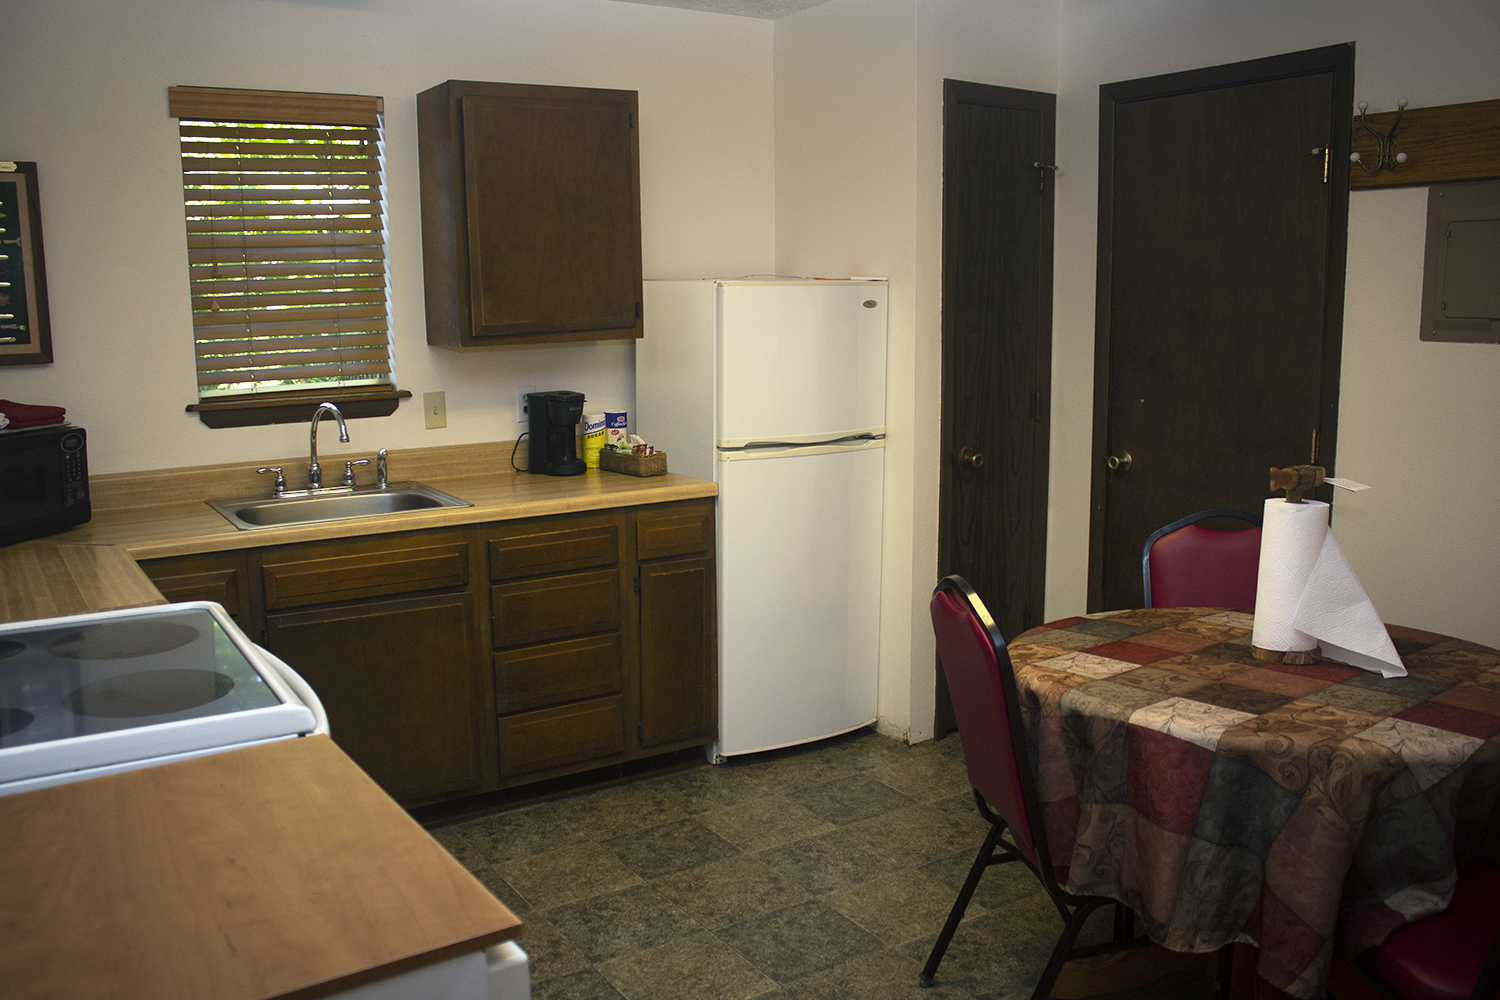 Cabin 8 kitchen.jpg